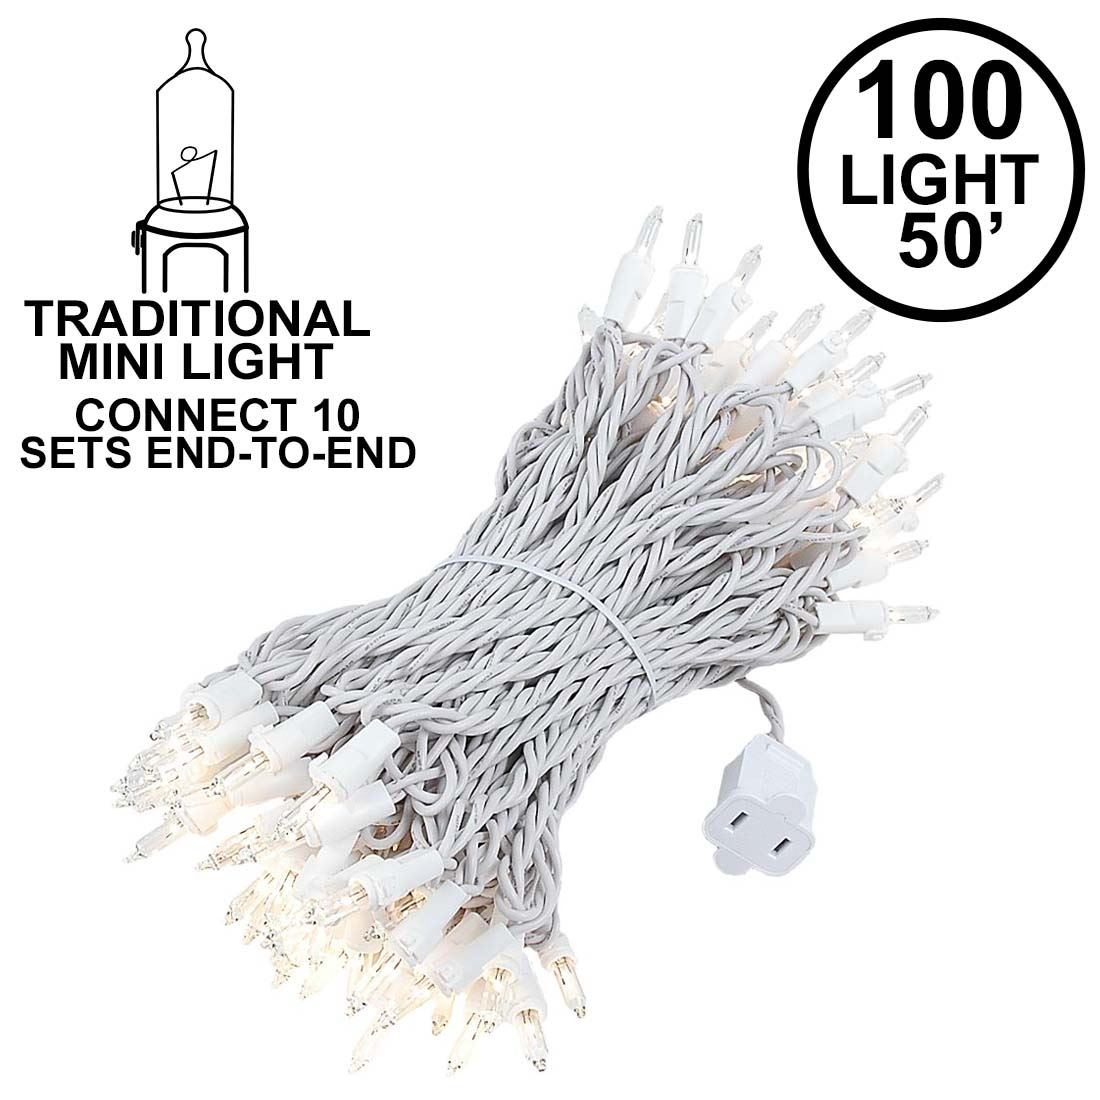 Christmas Mini Light Sets 100 White Wire 8 Function Lamp Picture Of 50 Long Lights Connect 10